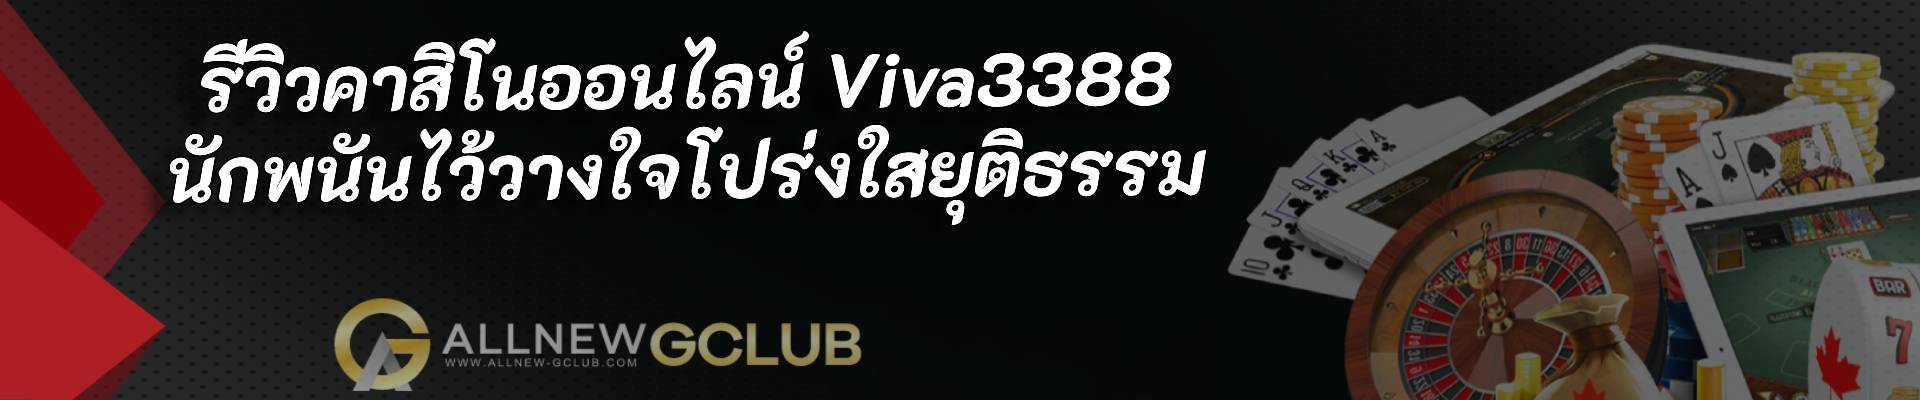 Notice: Undefined variable: cover_image_alt in /app/wp-content/themes/allnew-gclub.com/single.php on line 23